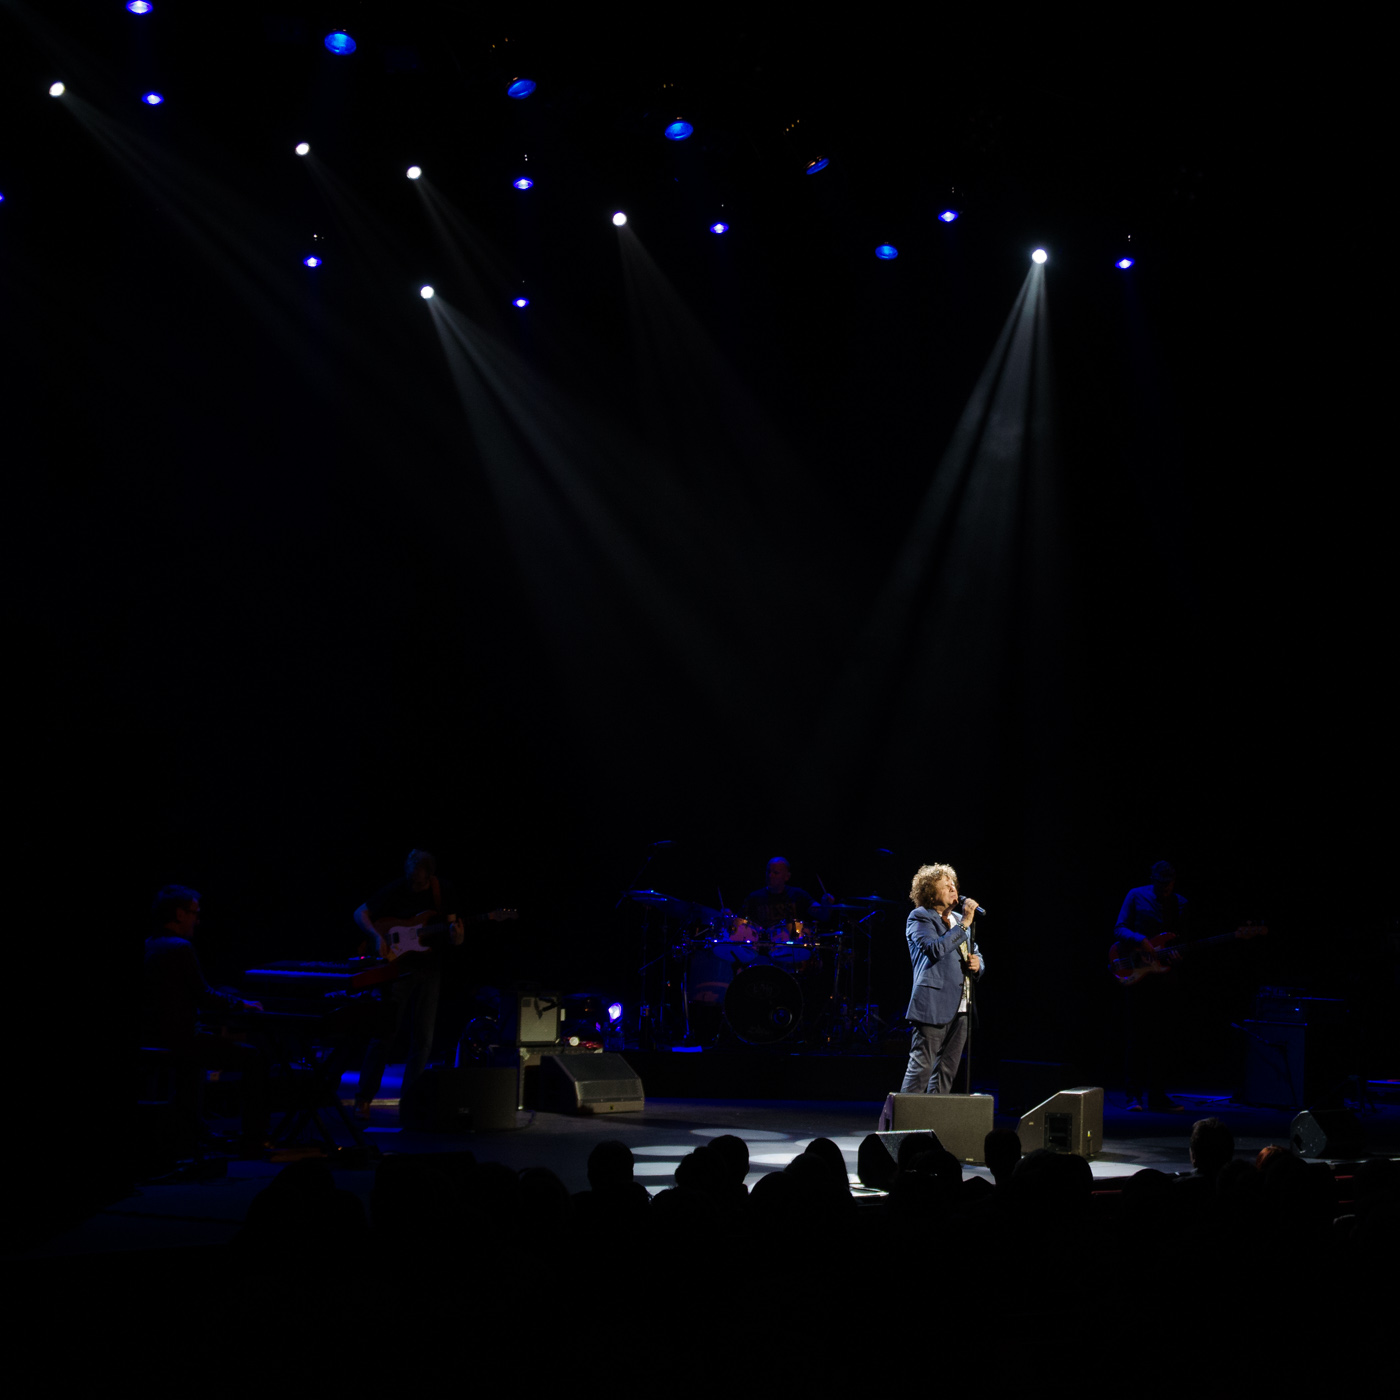 Leo Sayer at Bord Gais Energy Theatre by Sean Smyth (16-10-15) (58 of 129)